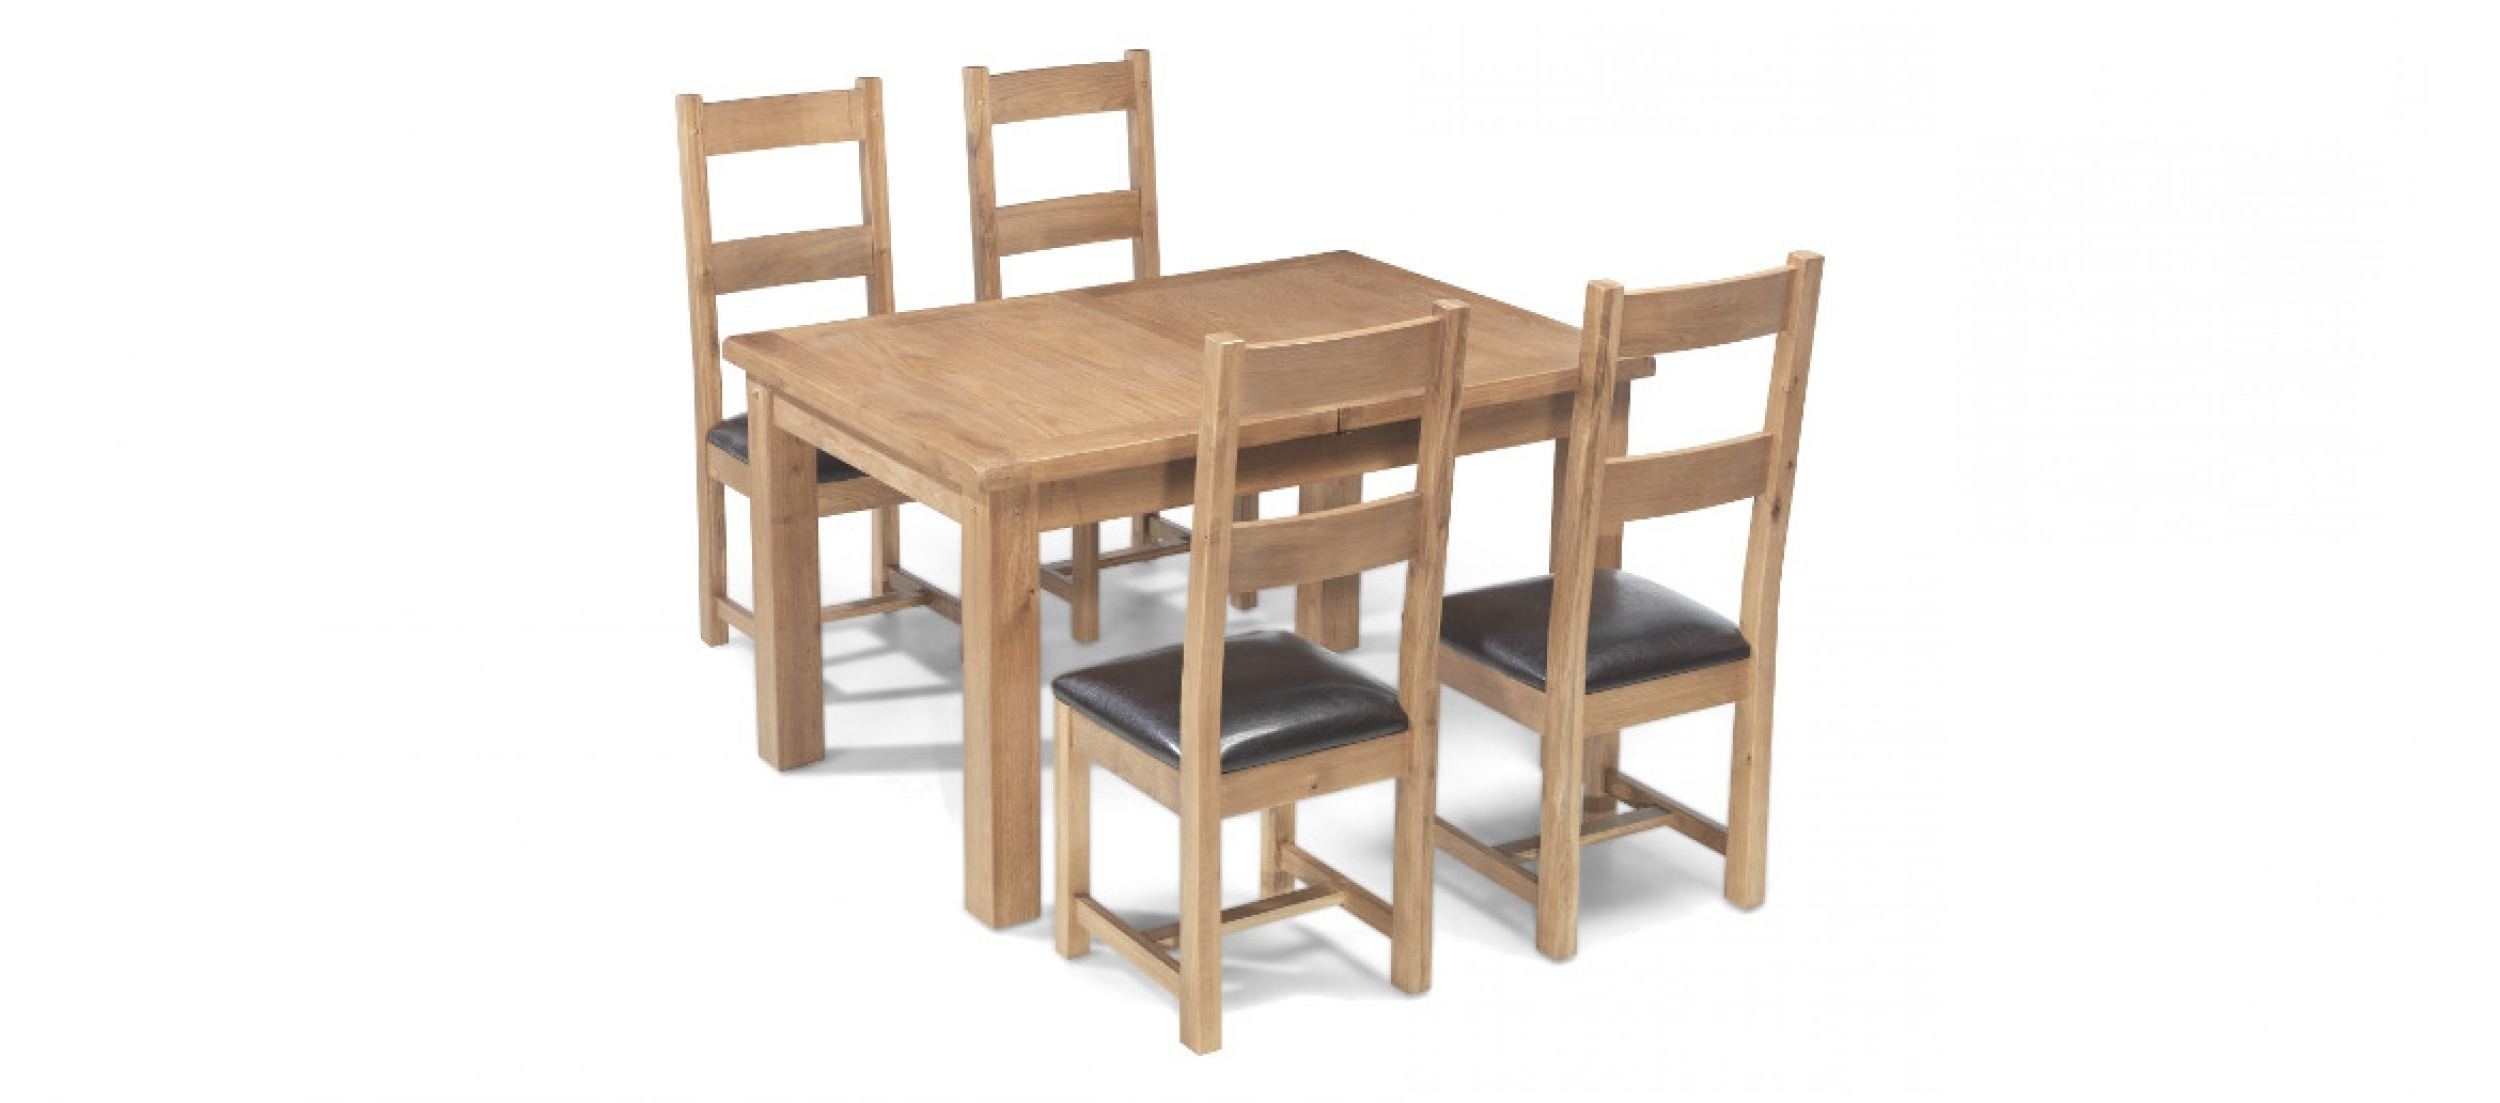 Rustic Oak 132 198 Cm Extending Dining Table And 4 Chairs (View 14 of 25)